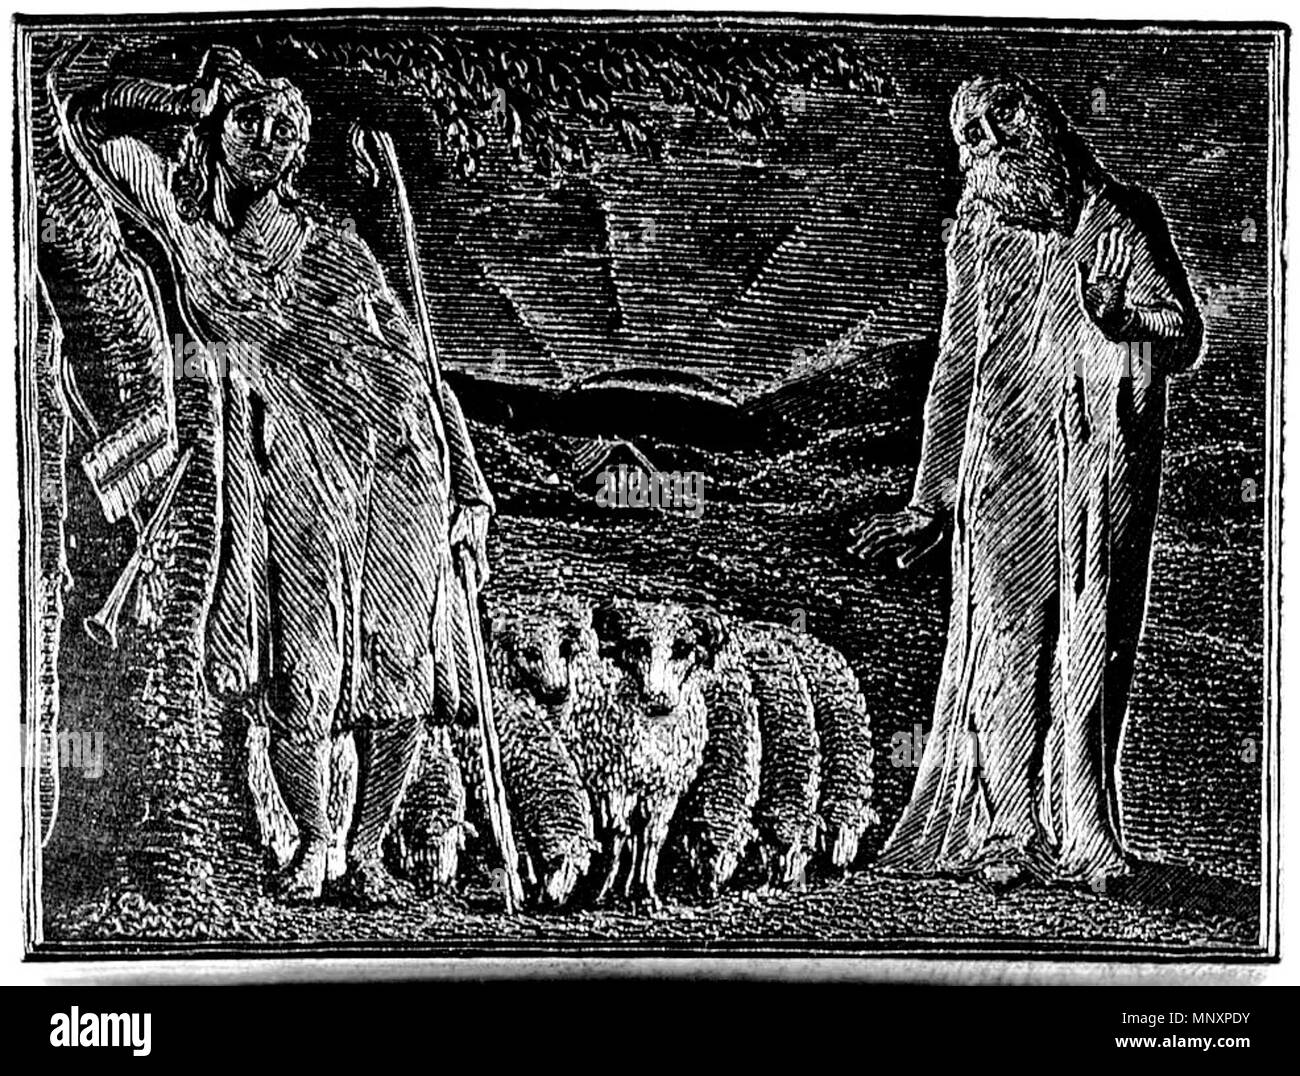 . English: The Pastorals of Virgil, related materials, object 5 woodblock bb504 bm-woodengraving 5 300bw . 15 June 2013, 09:49:12.   William Blake (1757–1827)   Alternative names W. Blake; Uil'iam Bleik  Description British painter, poet, writer, theologian, collector and engraver  Date of birth/death 28 November 1757 12 August 1827  Location of birth/death Broadwick Street Charing Cross  Work location London  Authority control  : Q41513 VIAF:54144439 ISNI:0000 0001 2096 135X ULAN:500012489 LCCN:n78095331 NLA:35019221 WorldCat     This is a faithful photographic reproduction of a two - Stock Image